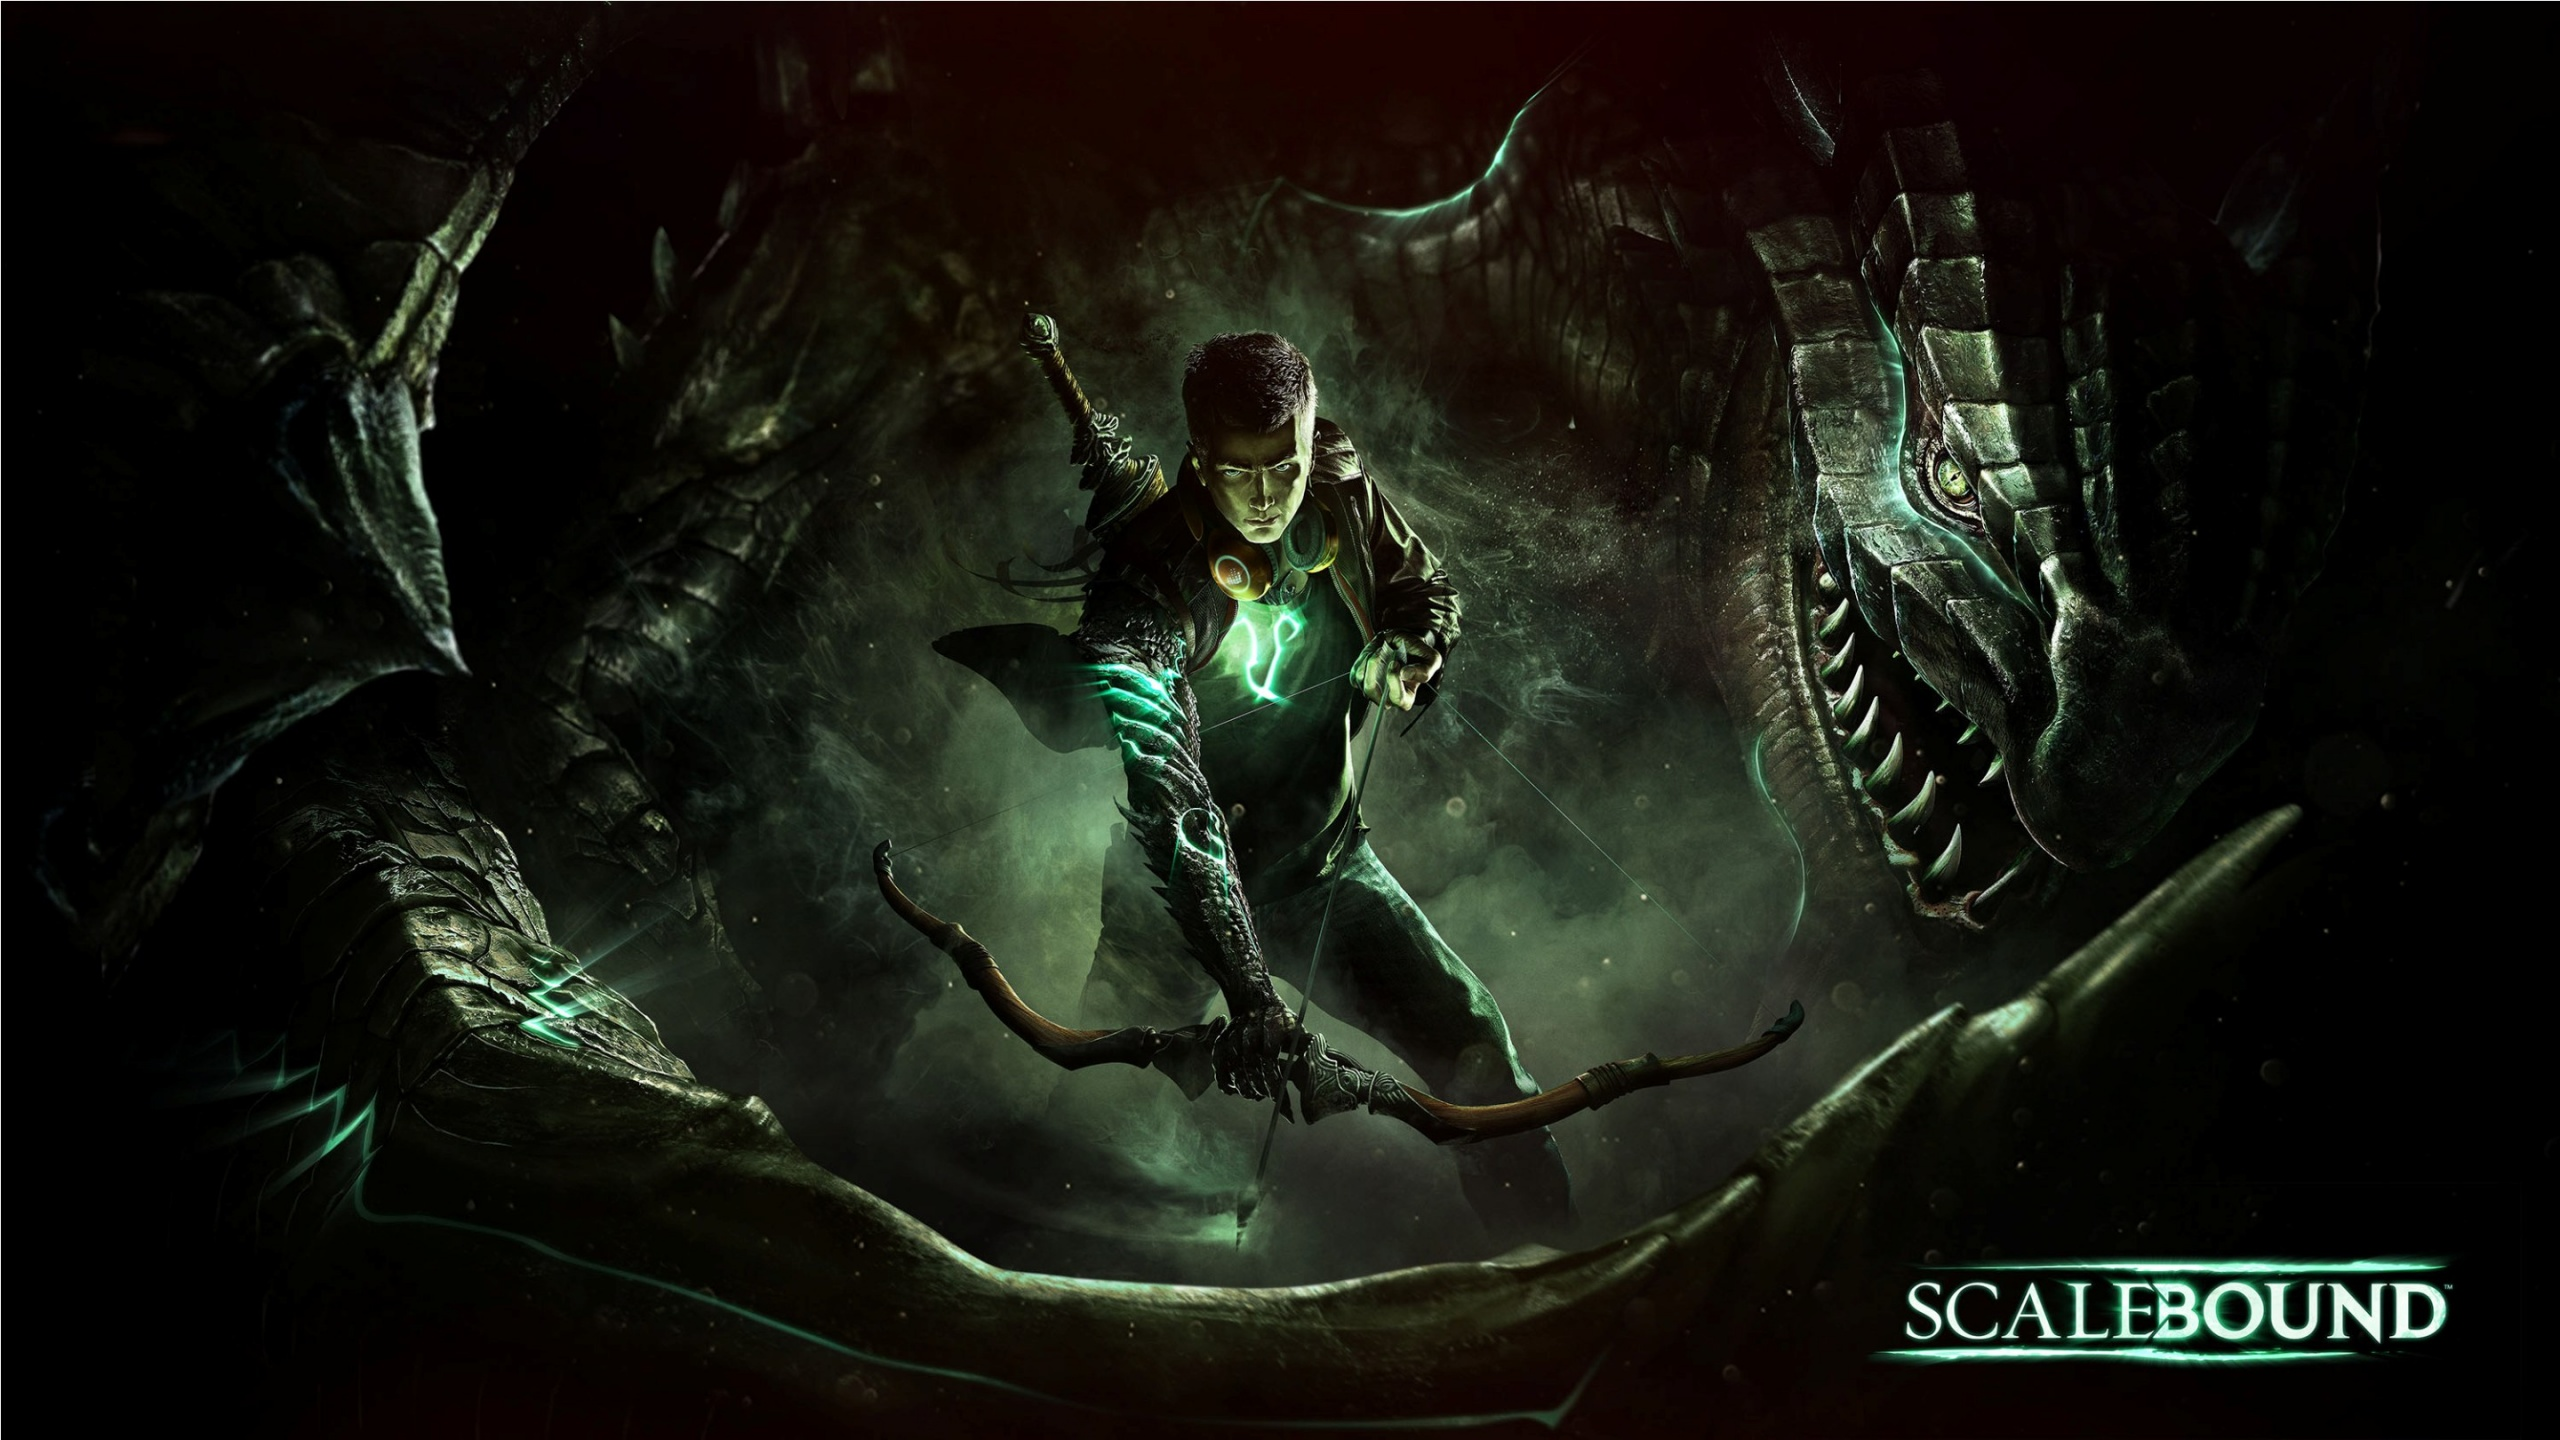 Scalebound game wallpapers 2560x1440 713072 for Fond ecran gaming